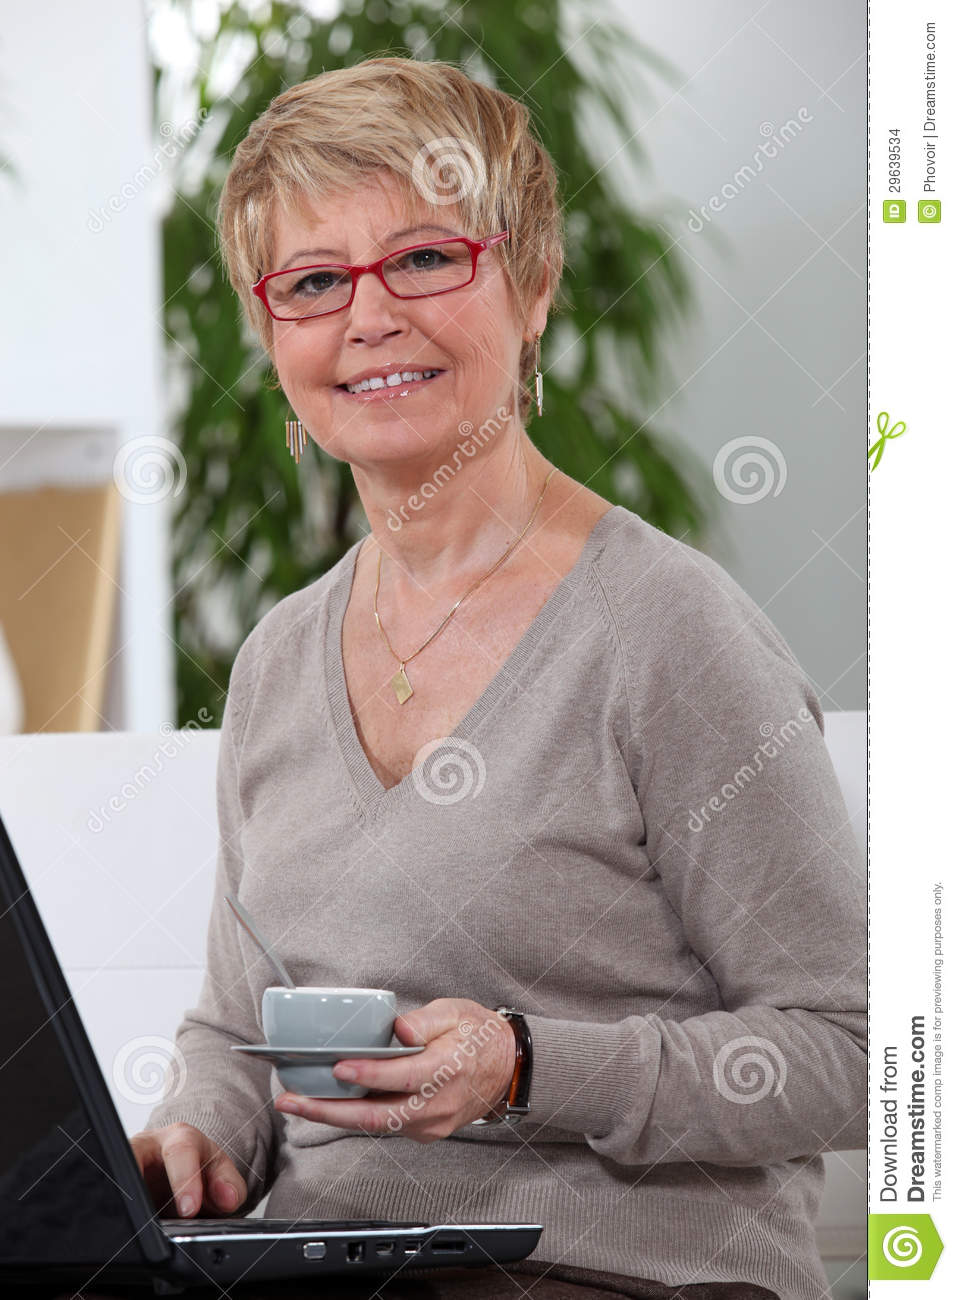 Middle-aged women drinking coffee